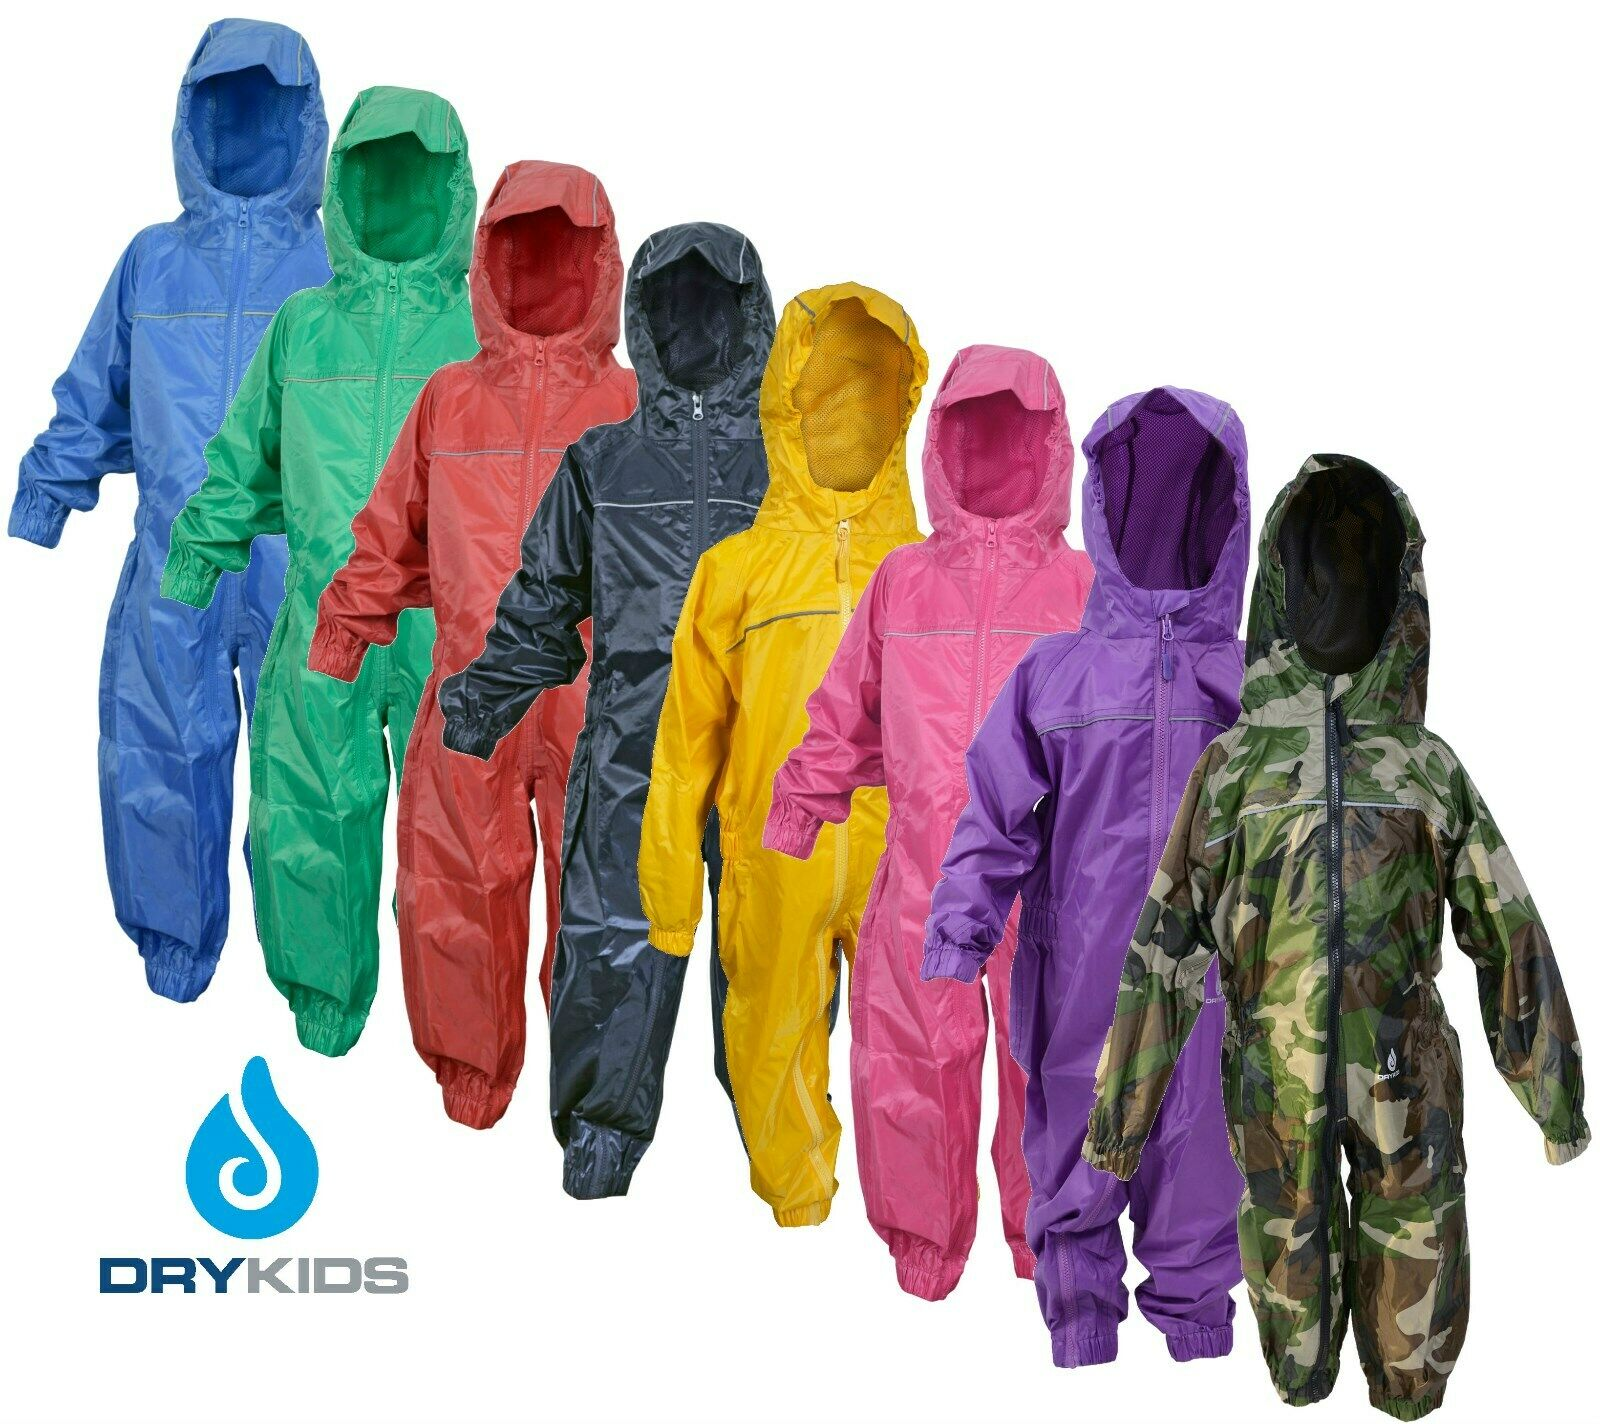 Dry Kids Childrens Waterproof Trousers Dungarees Fleece Lined Boys /& Girls 2-12y